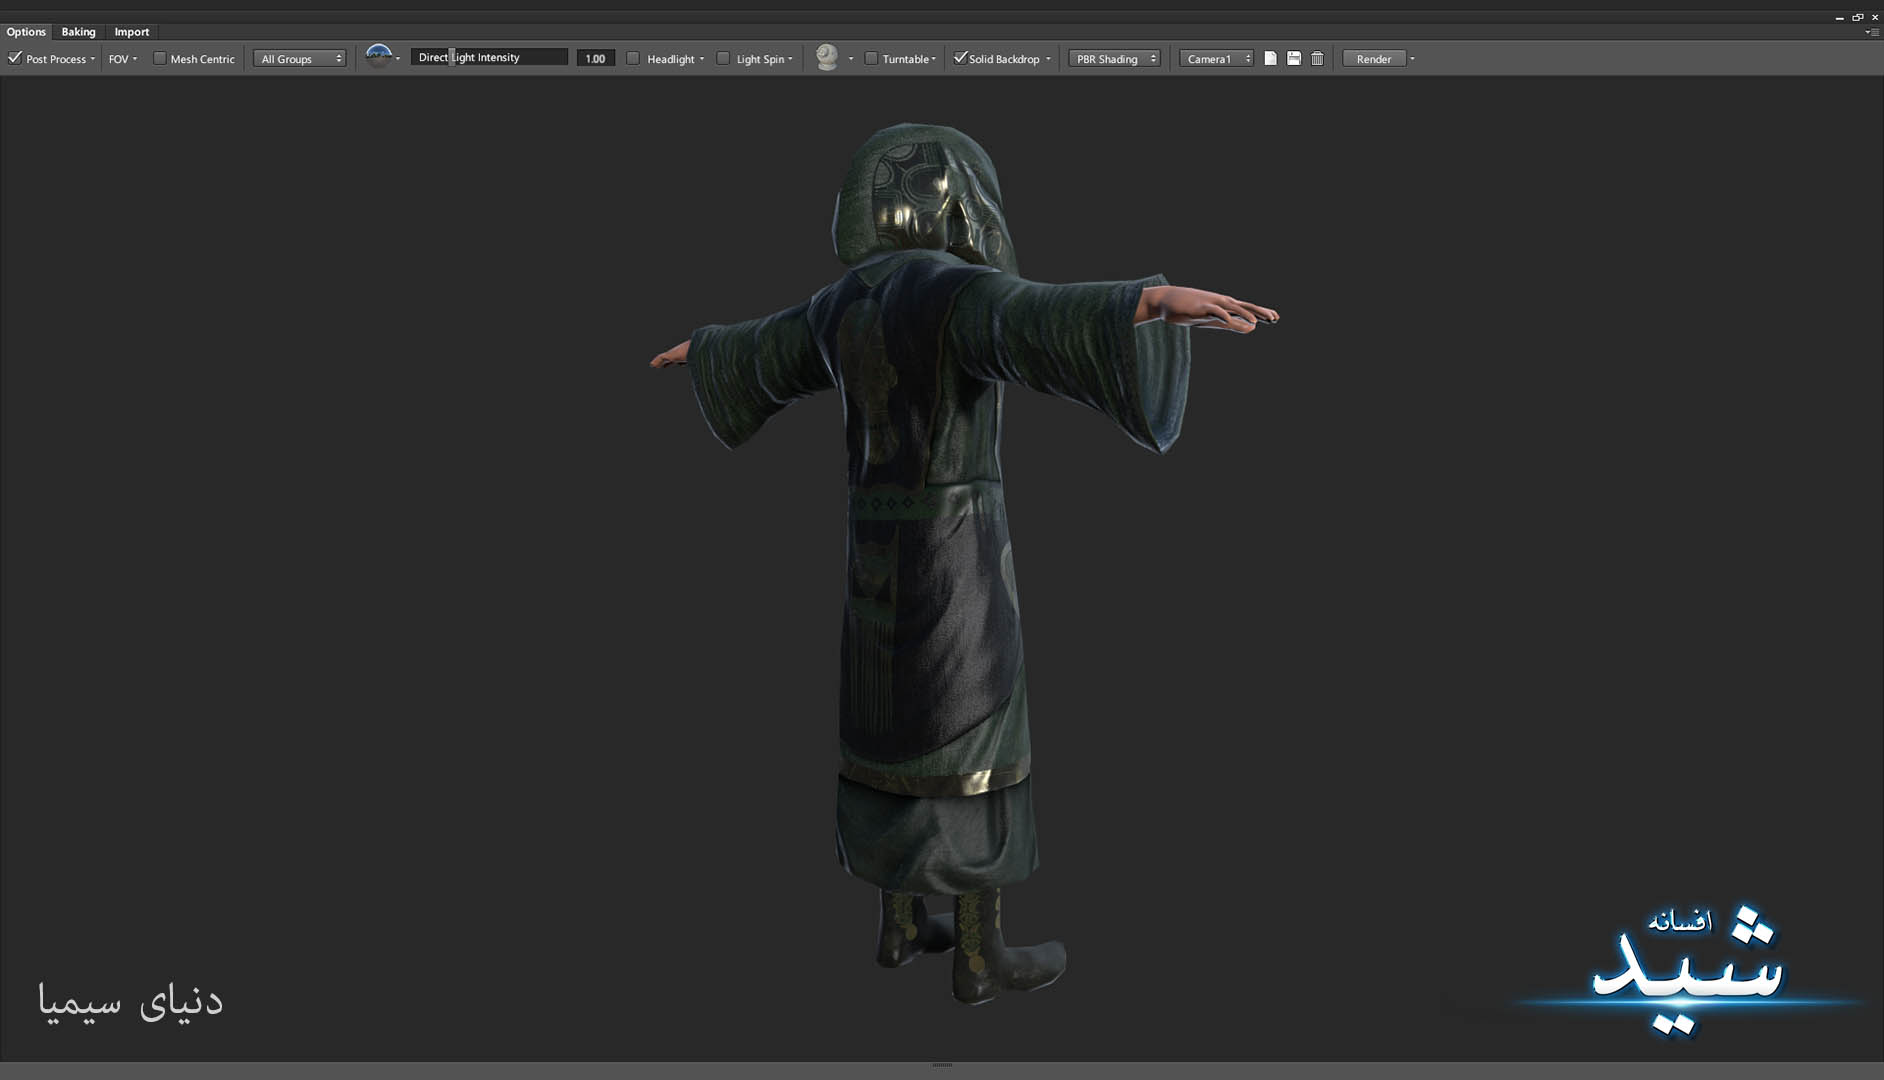 Legend of the light_Witcher Character Texturing_Hadi Beheshti CG Artist Game Designer-3